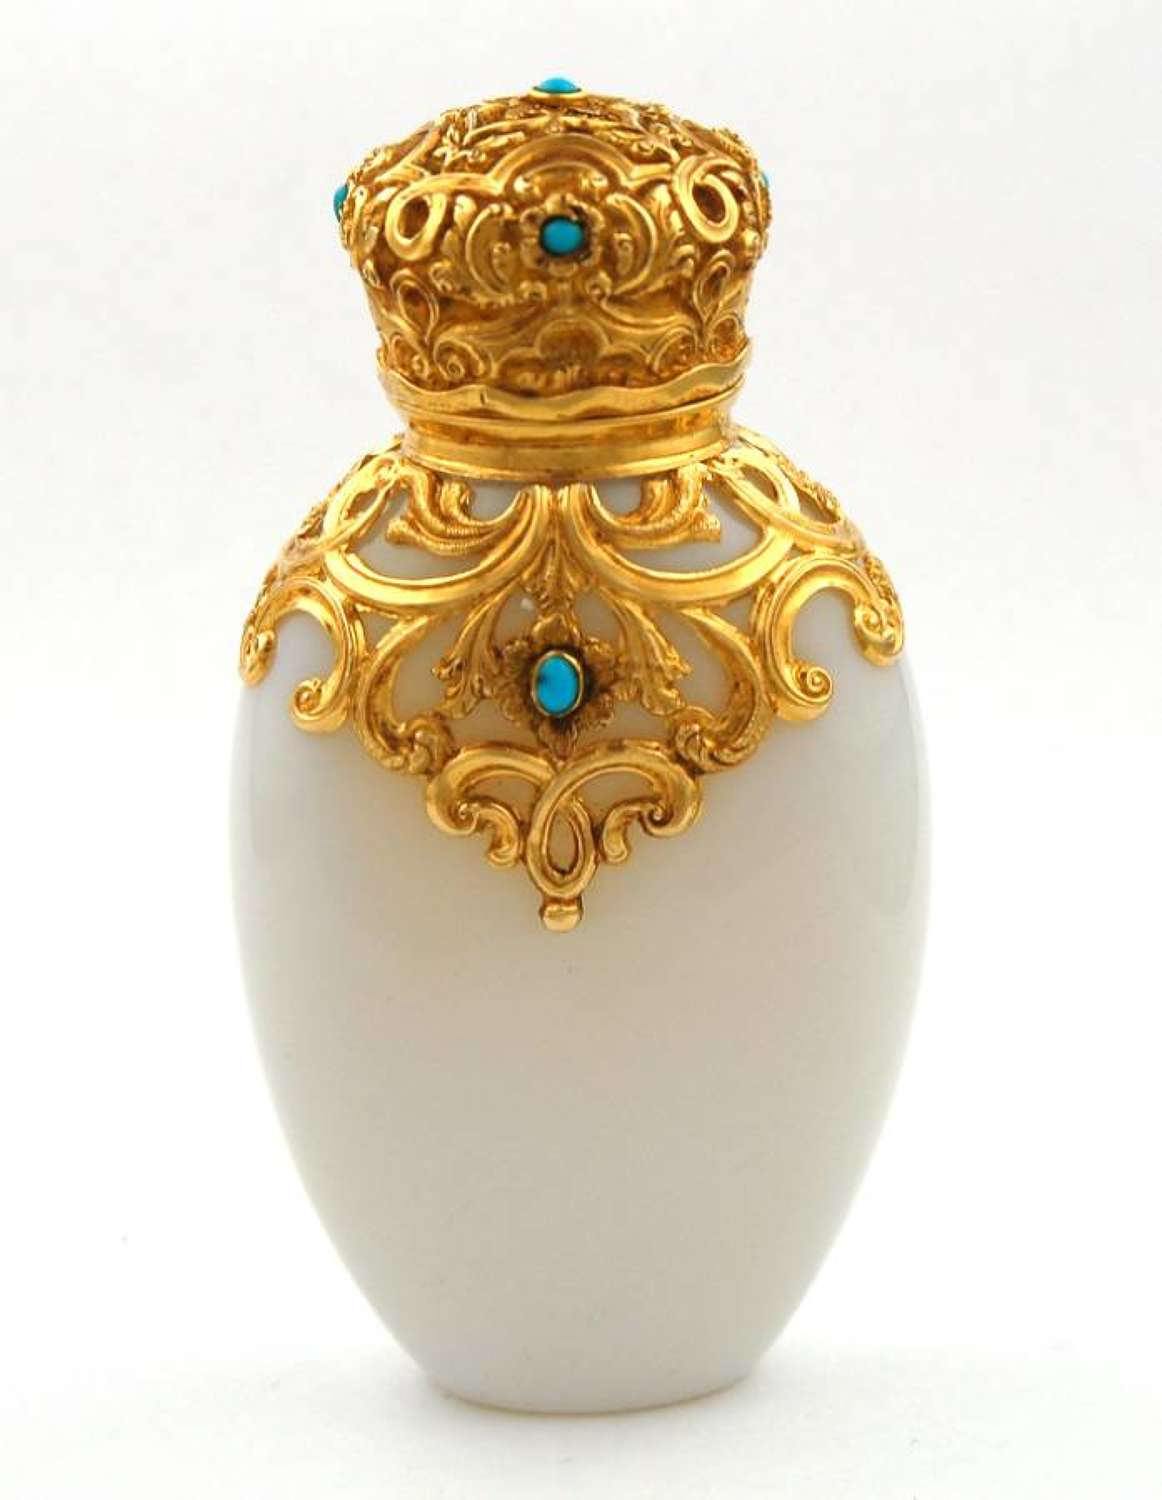 Gold-mounted Scent with Turquoises